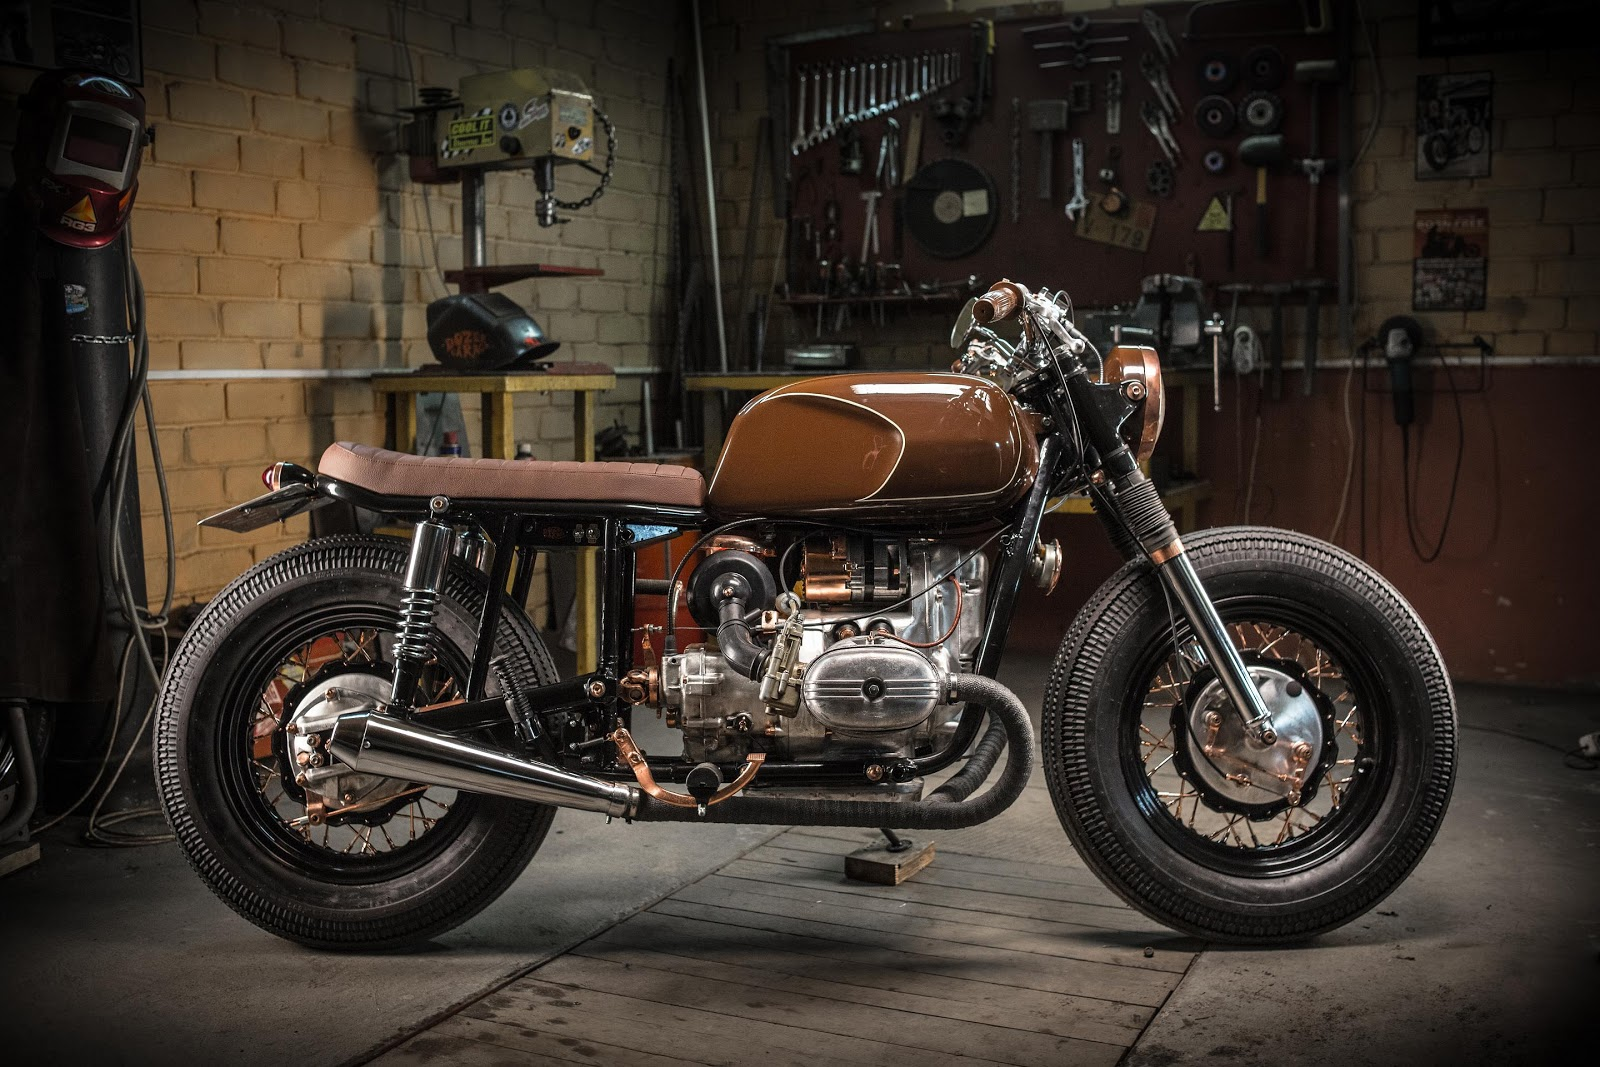 a nice cafe-racer built from an Ural motorcycle